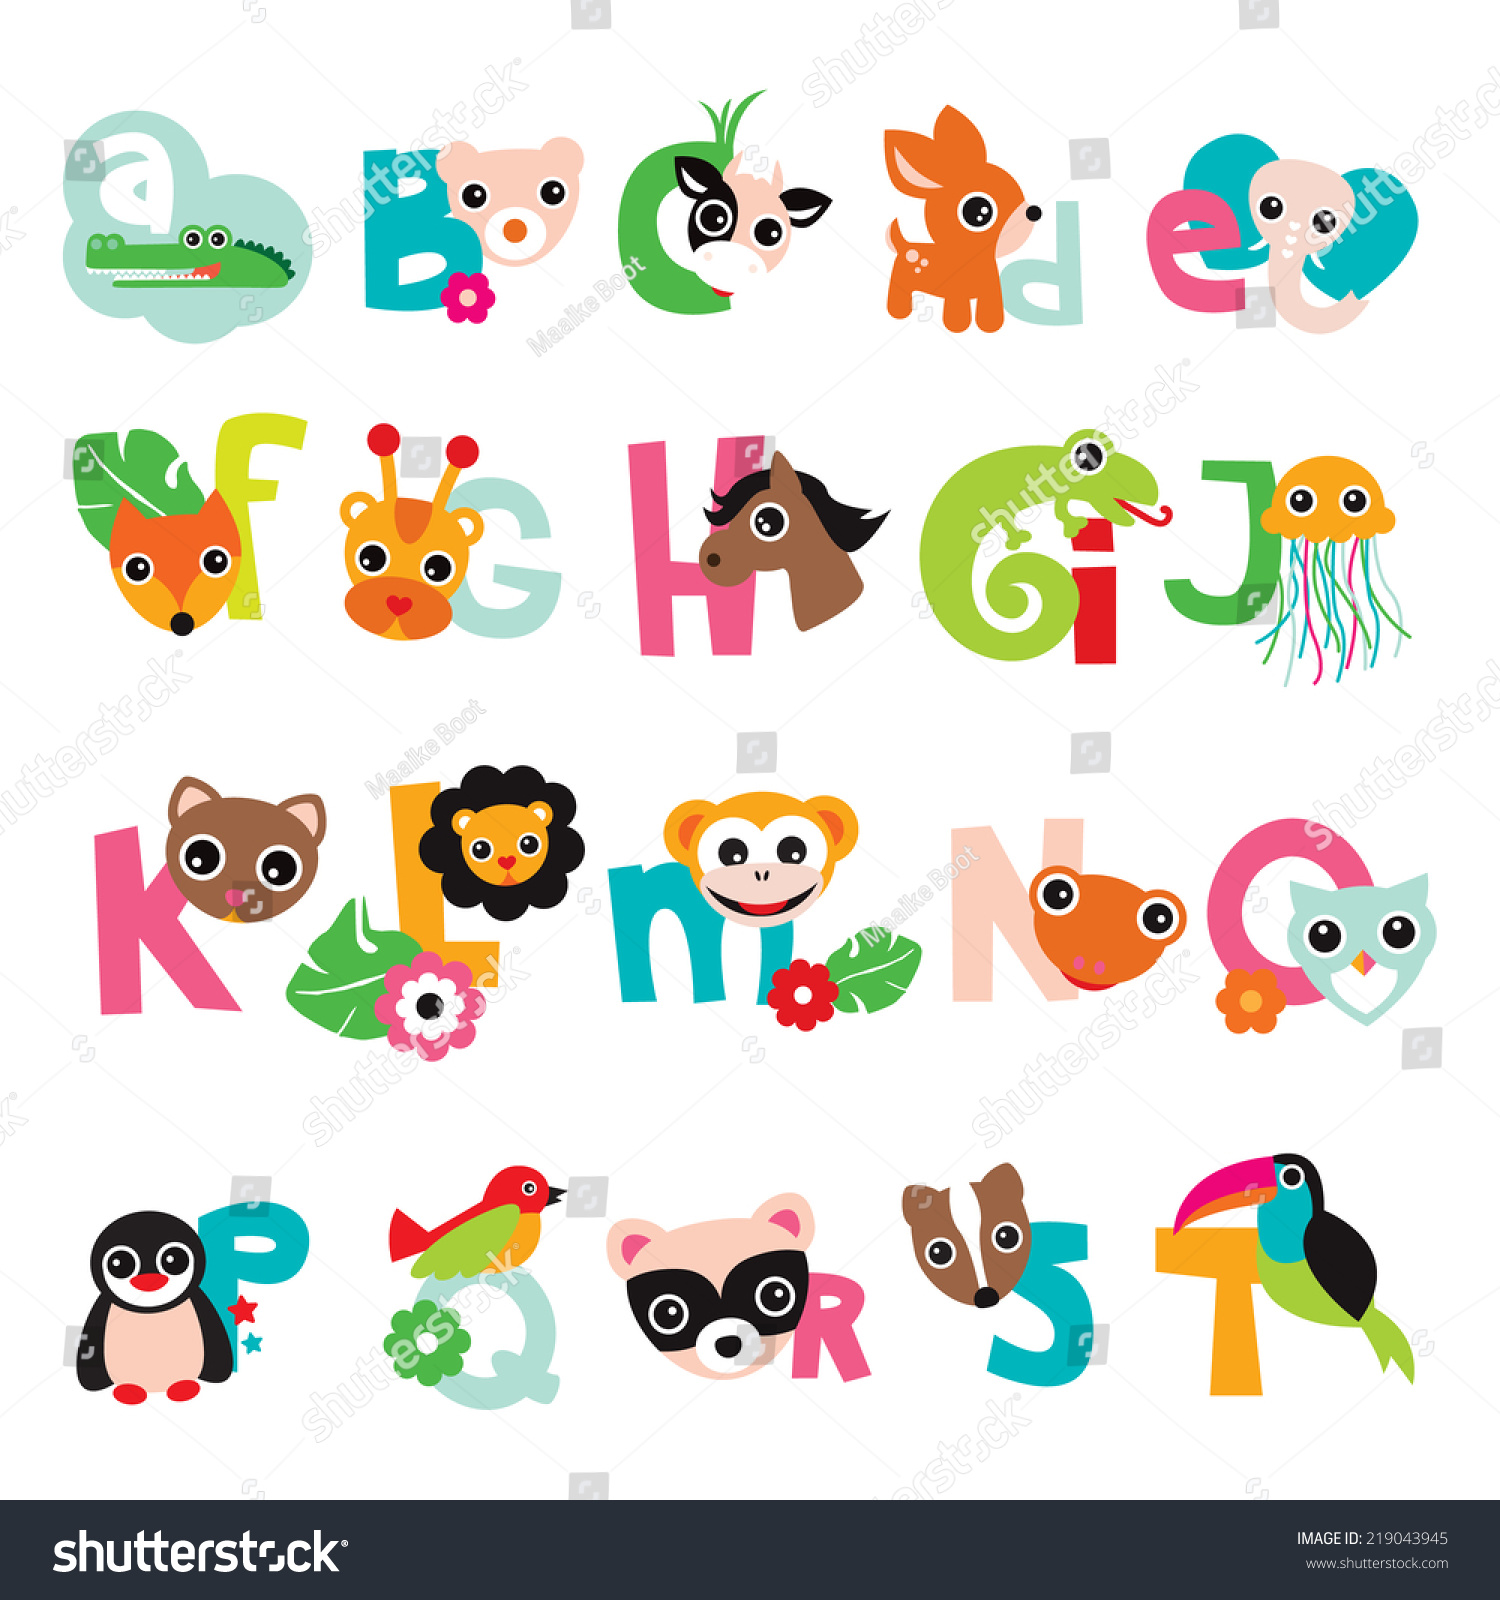 Gallery For gt Animal Alphabets Kids